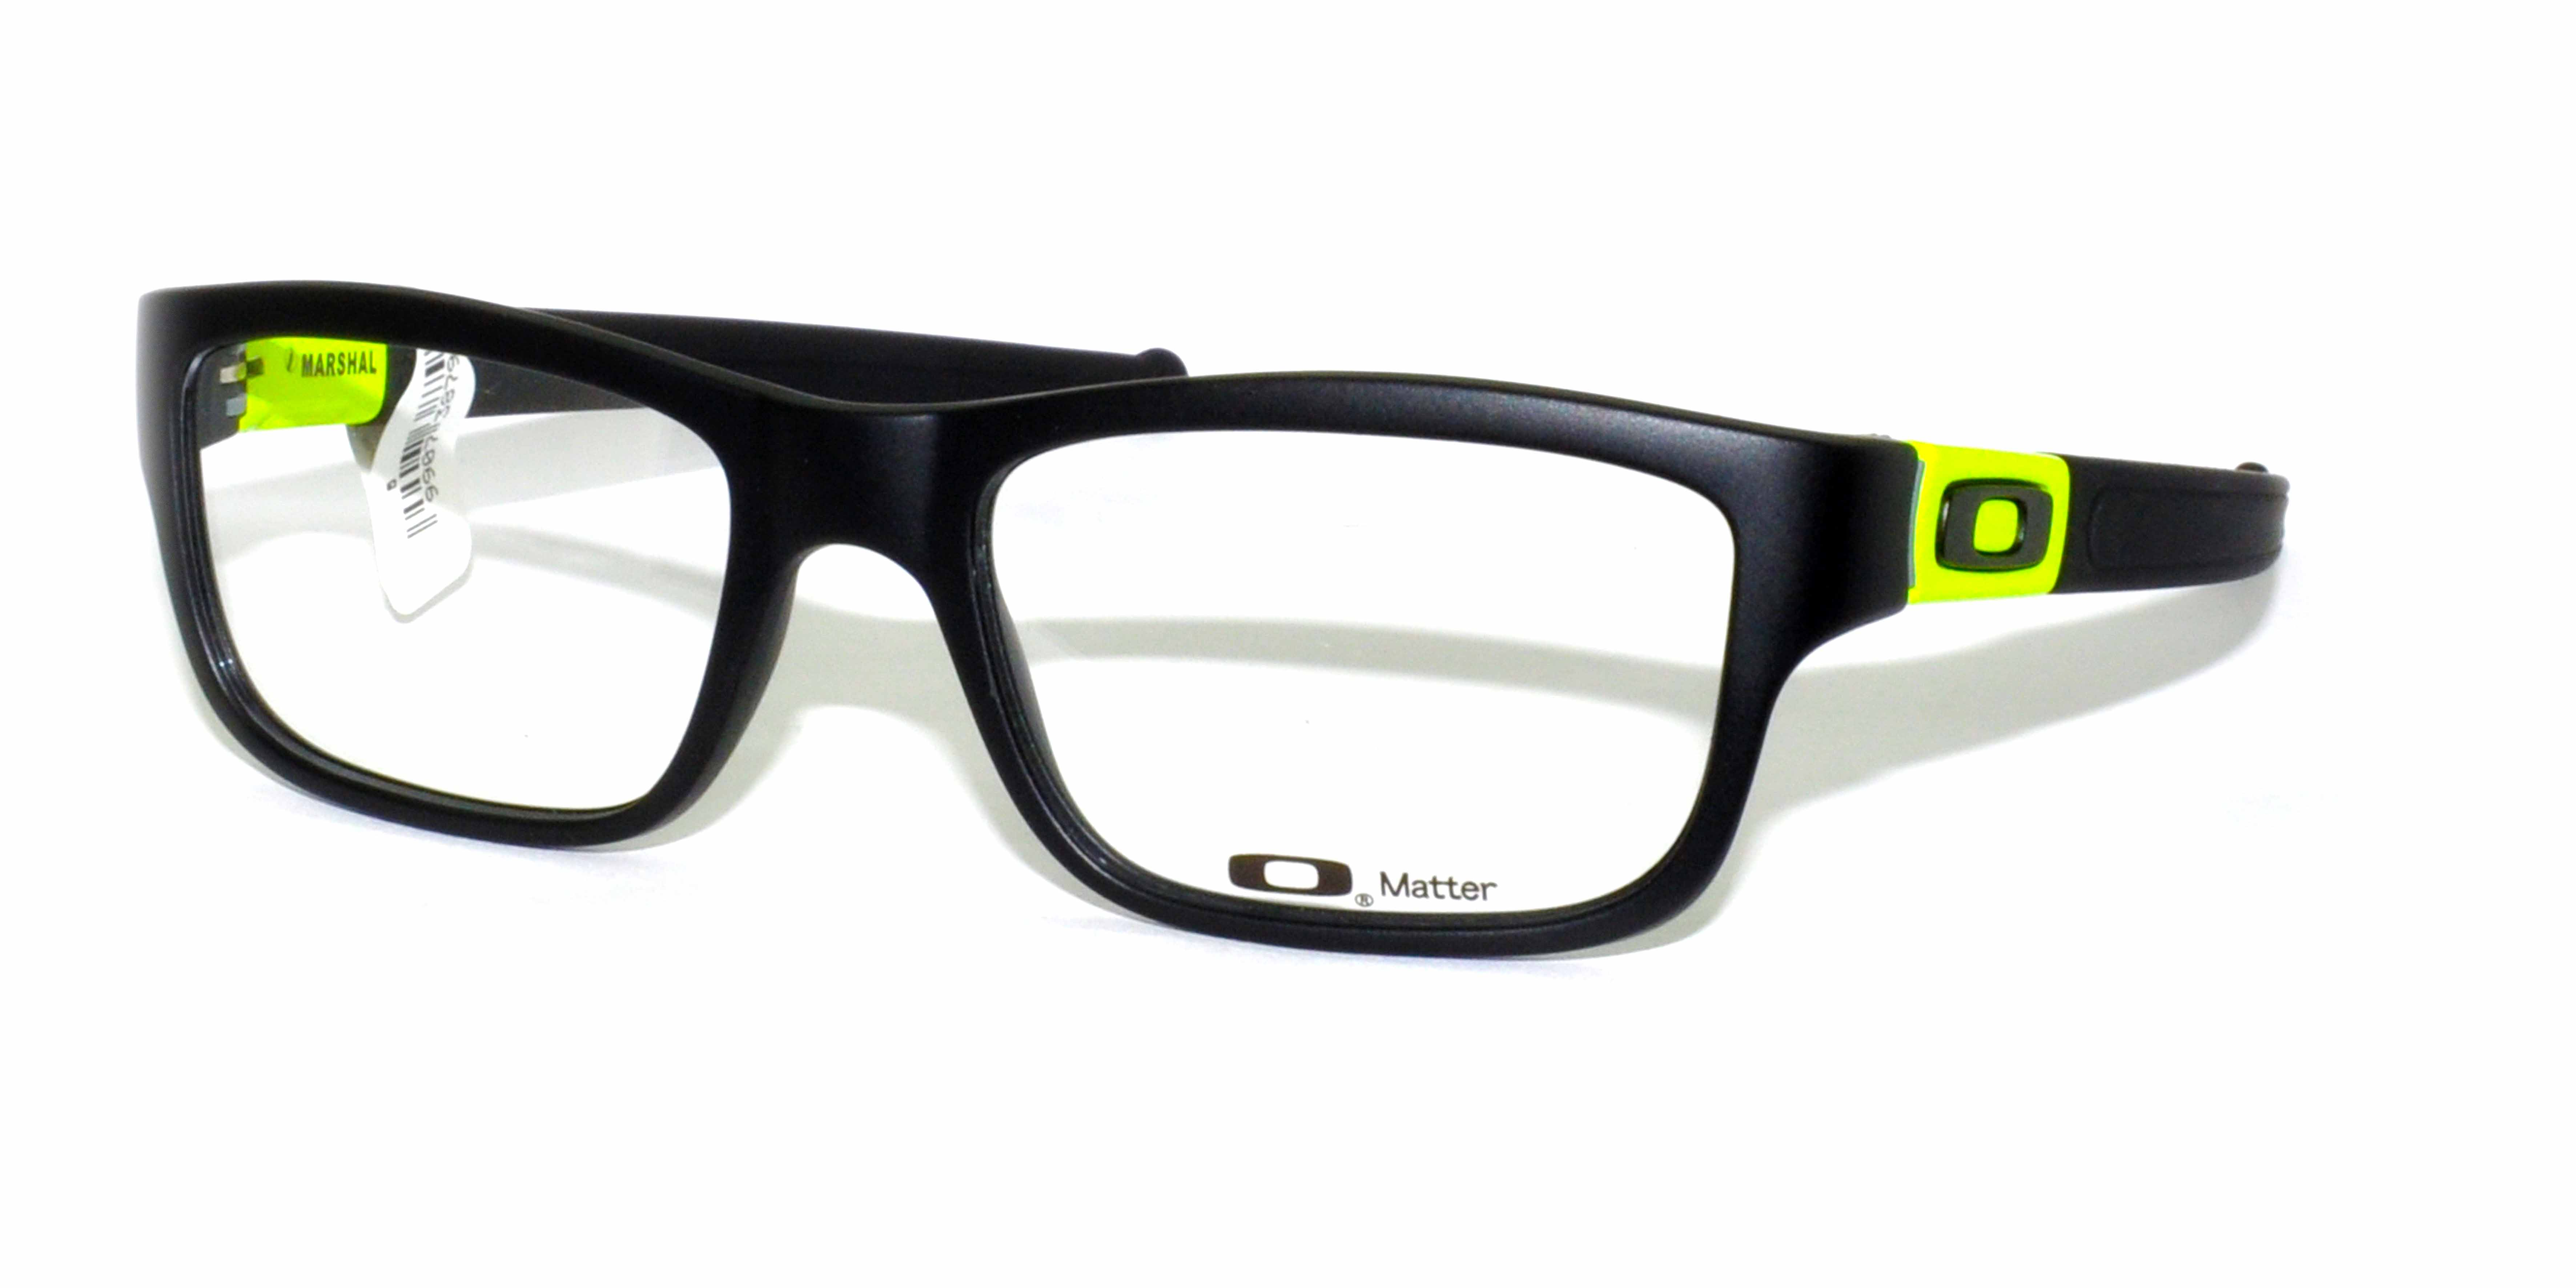 Oakley Prescription Glasses Frame Warranty « Heritage Malta